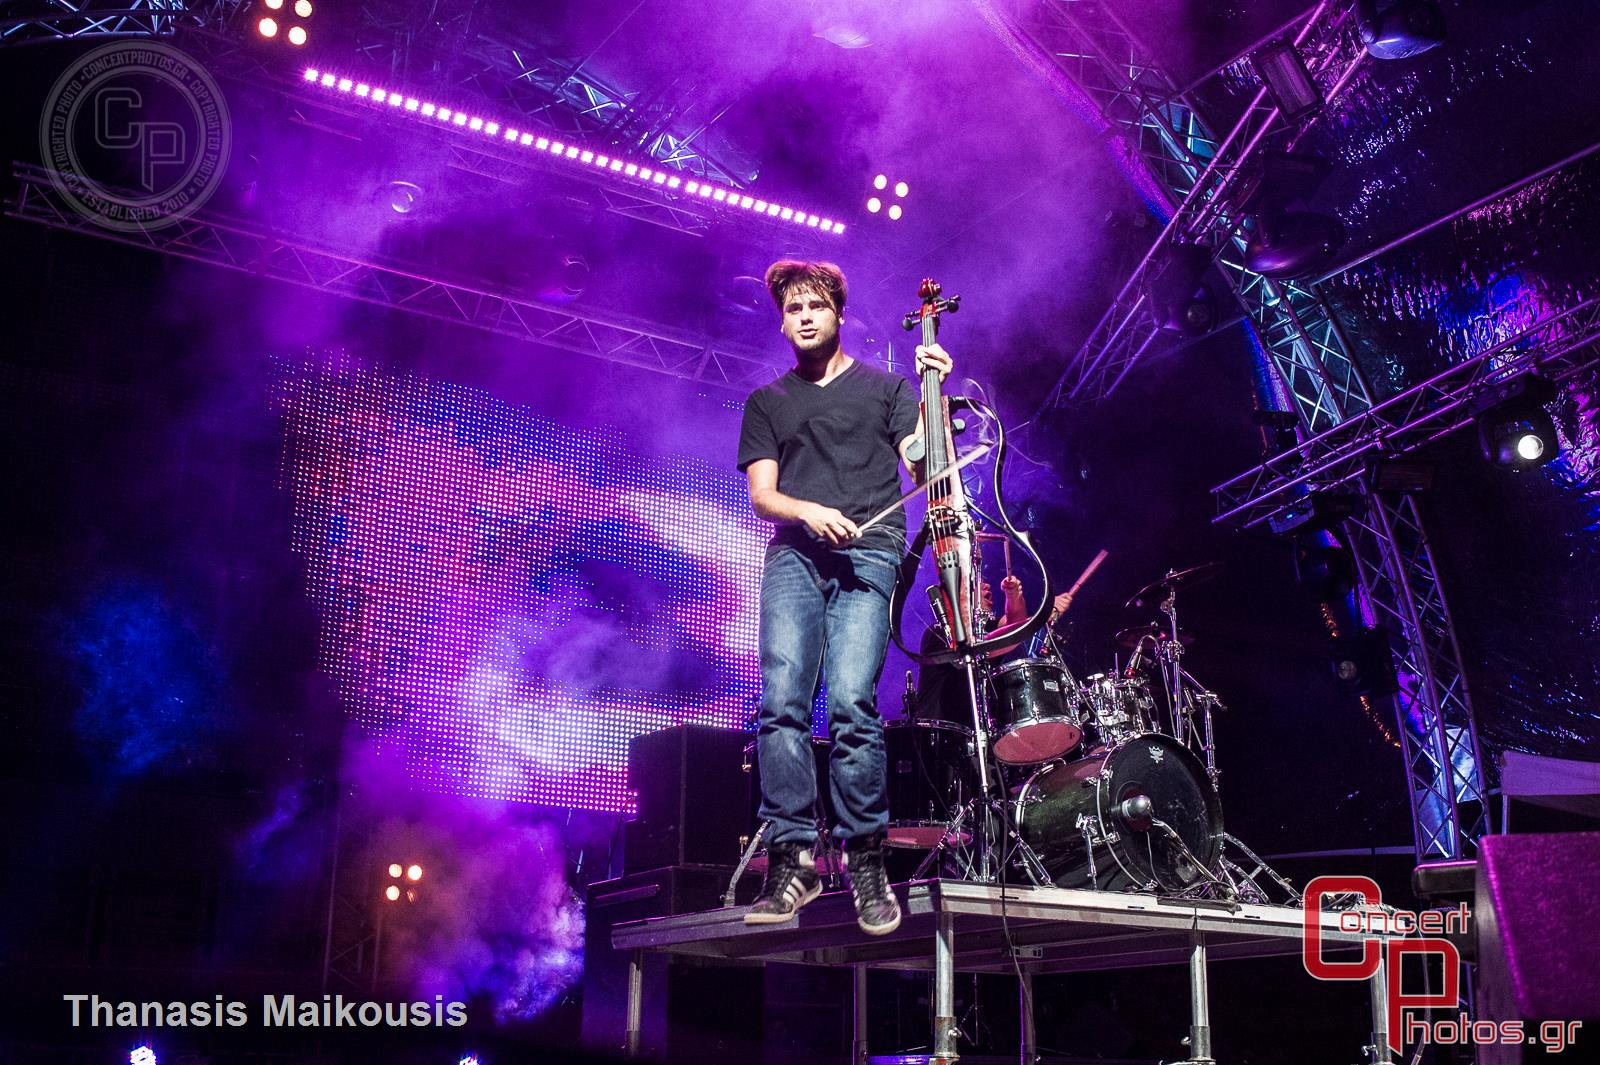 2Cellos-2Cellos Technopolis photographer: Thanasis Maikousis - untitled shoot-6415